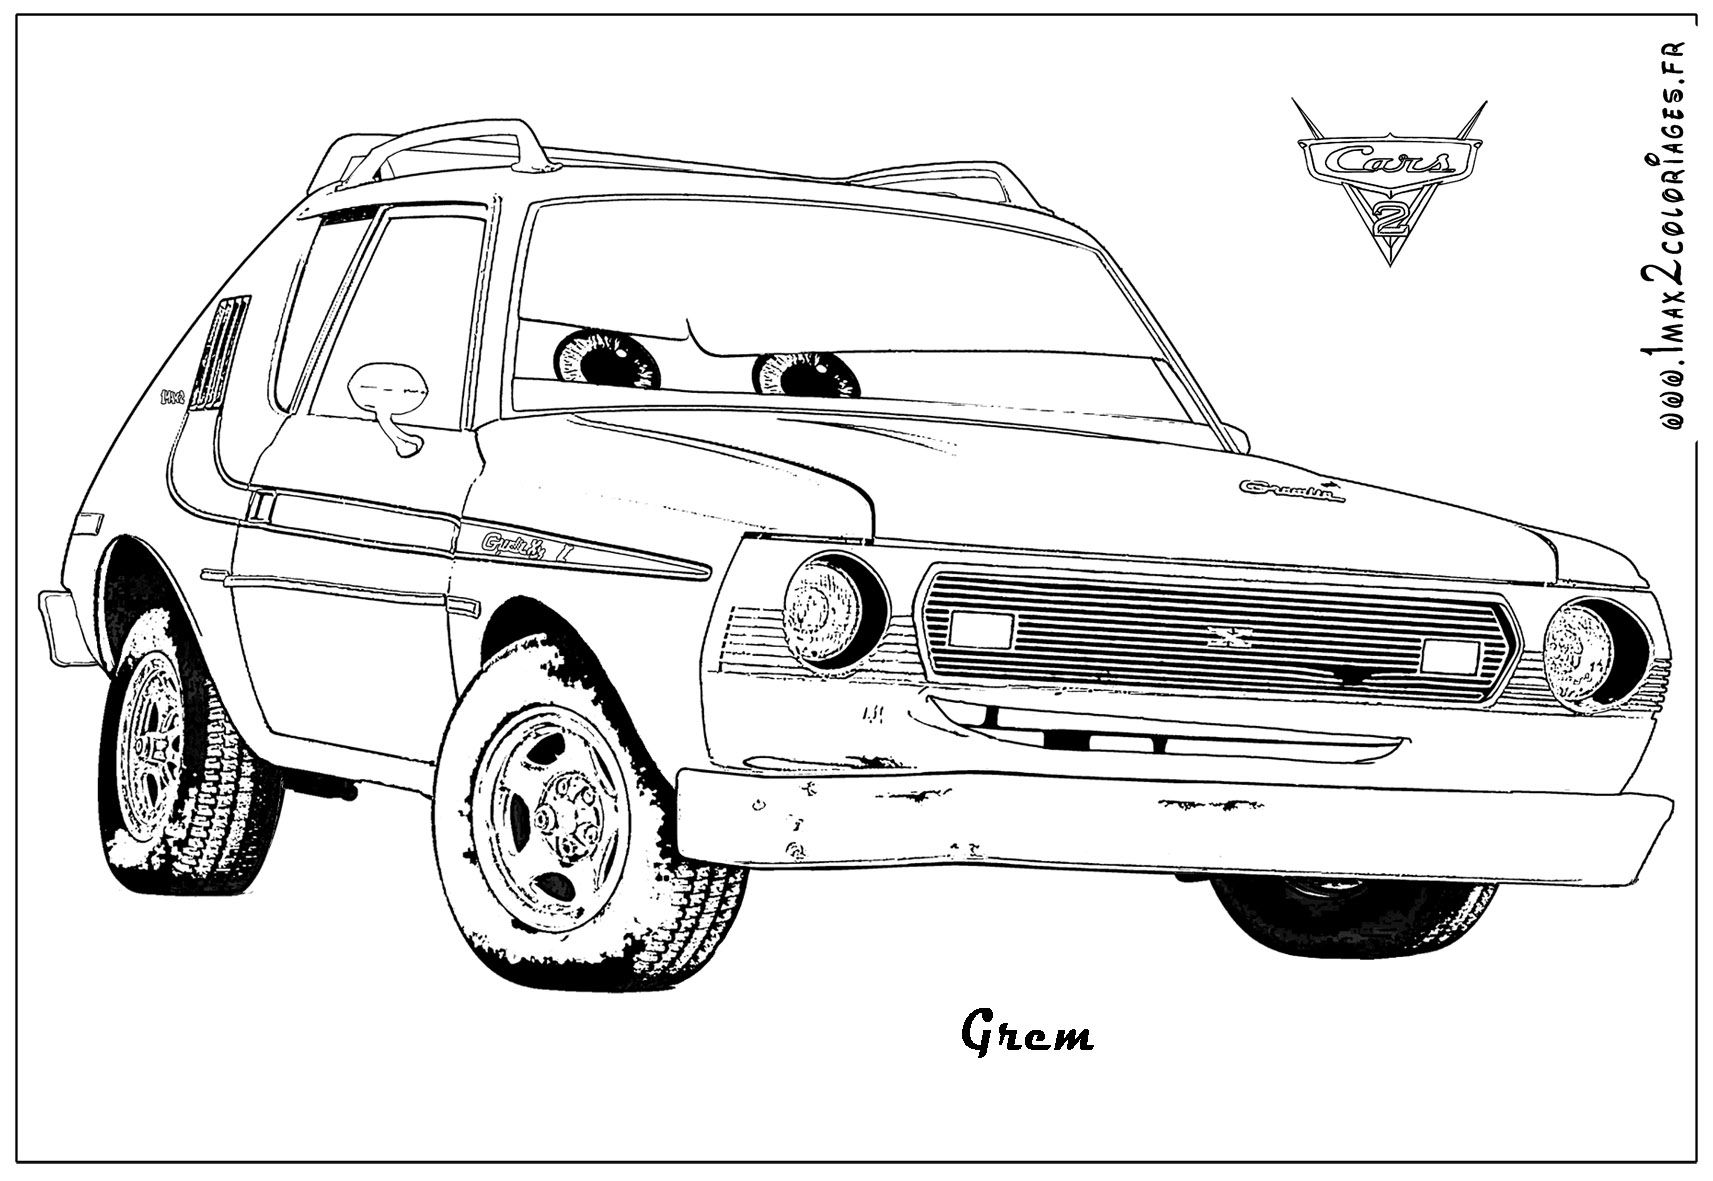 cars 2 printable coloring pages grem cars 2 colouring